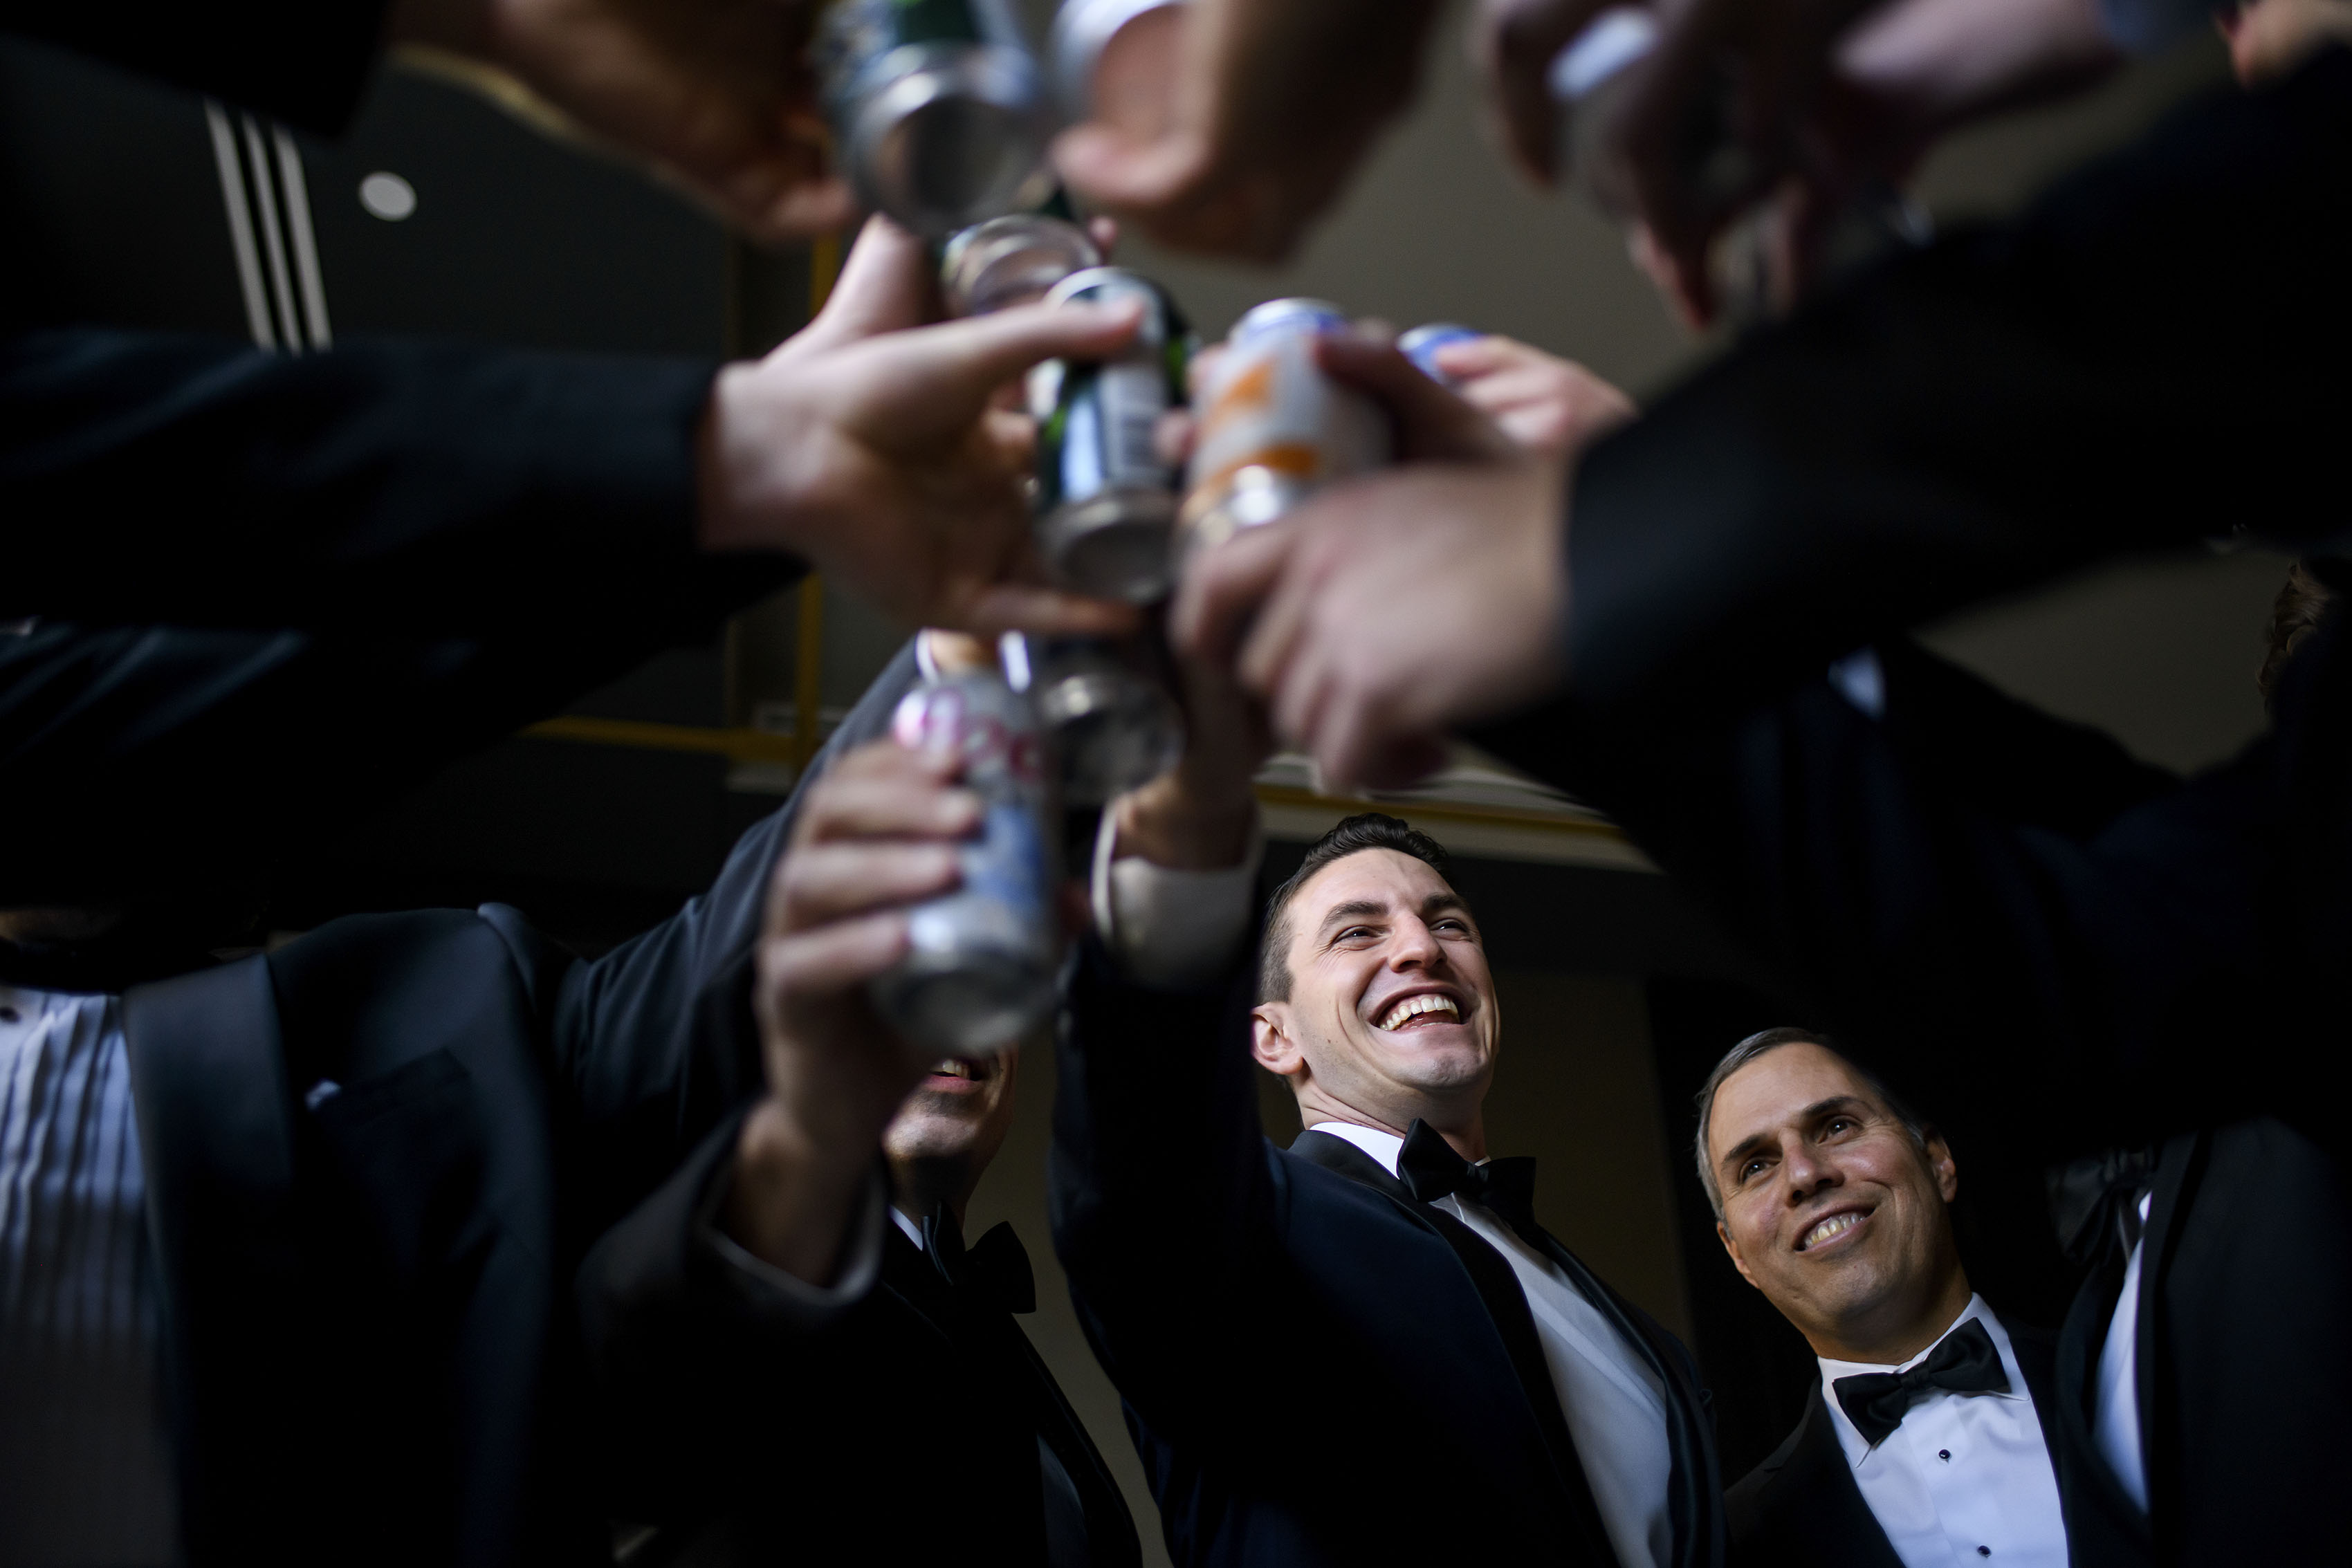 Alex toasts with his groomsment